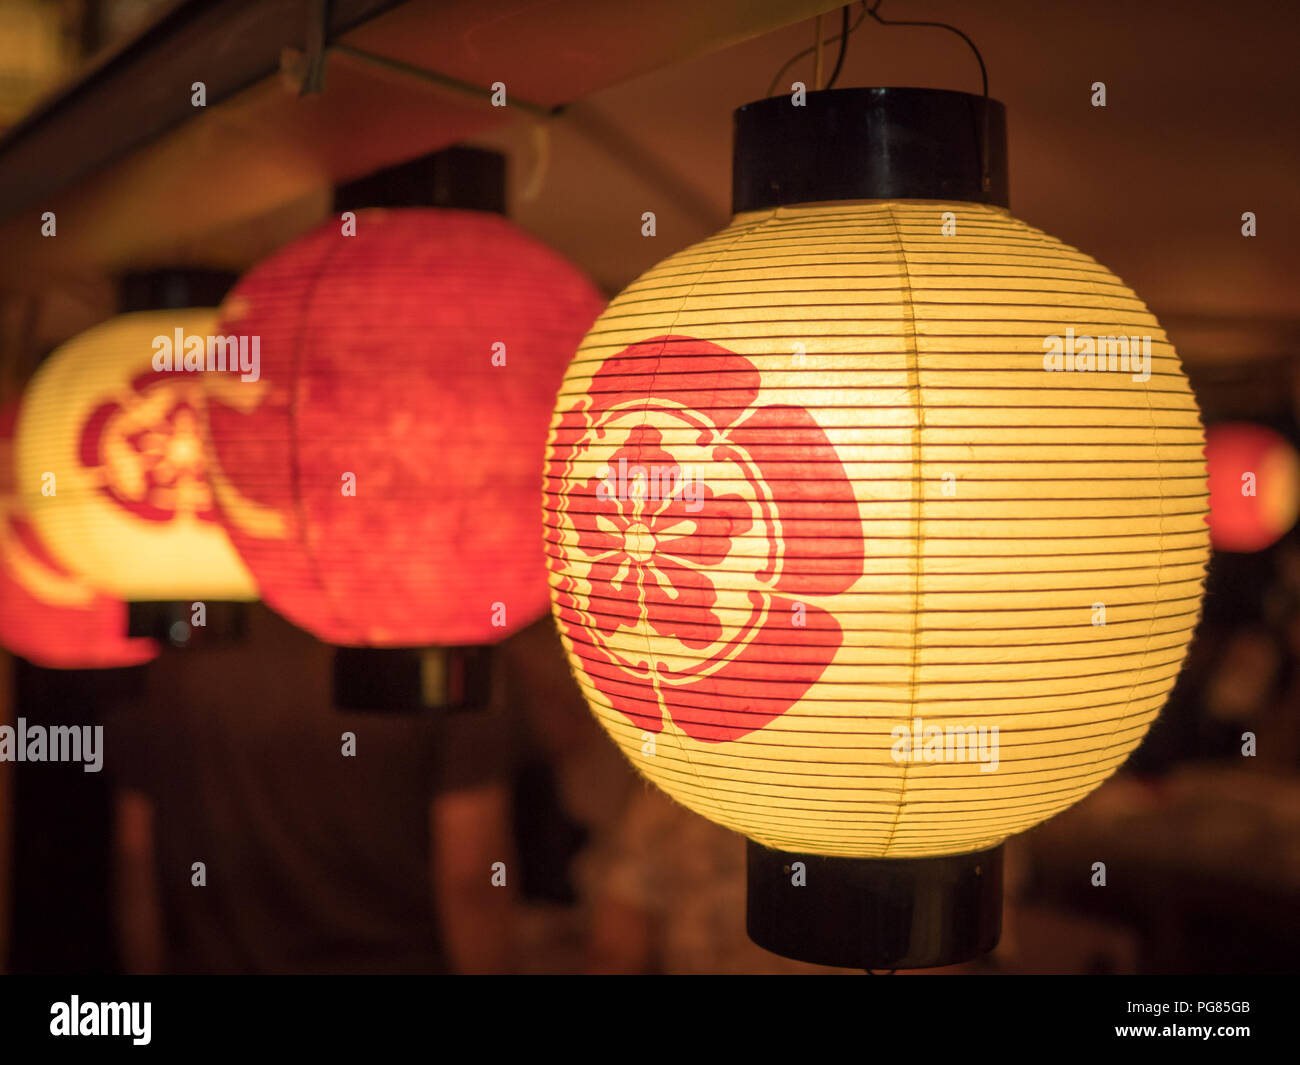 Japanese Paper Lantern Stock Photos & Japanese Paper Lantern Stock